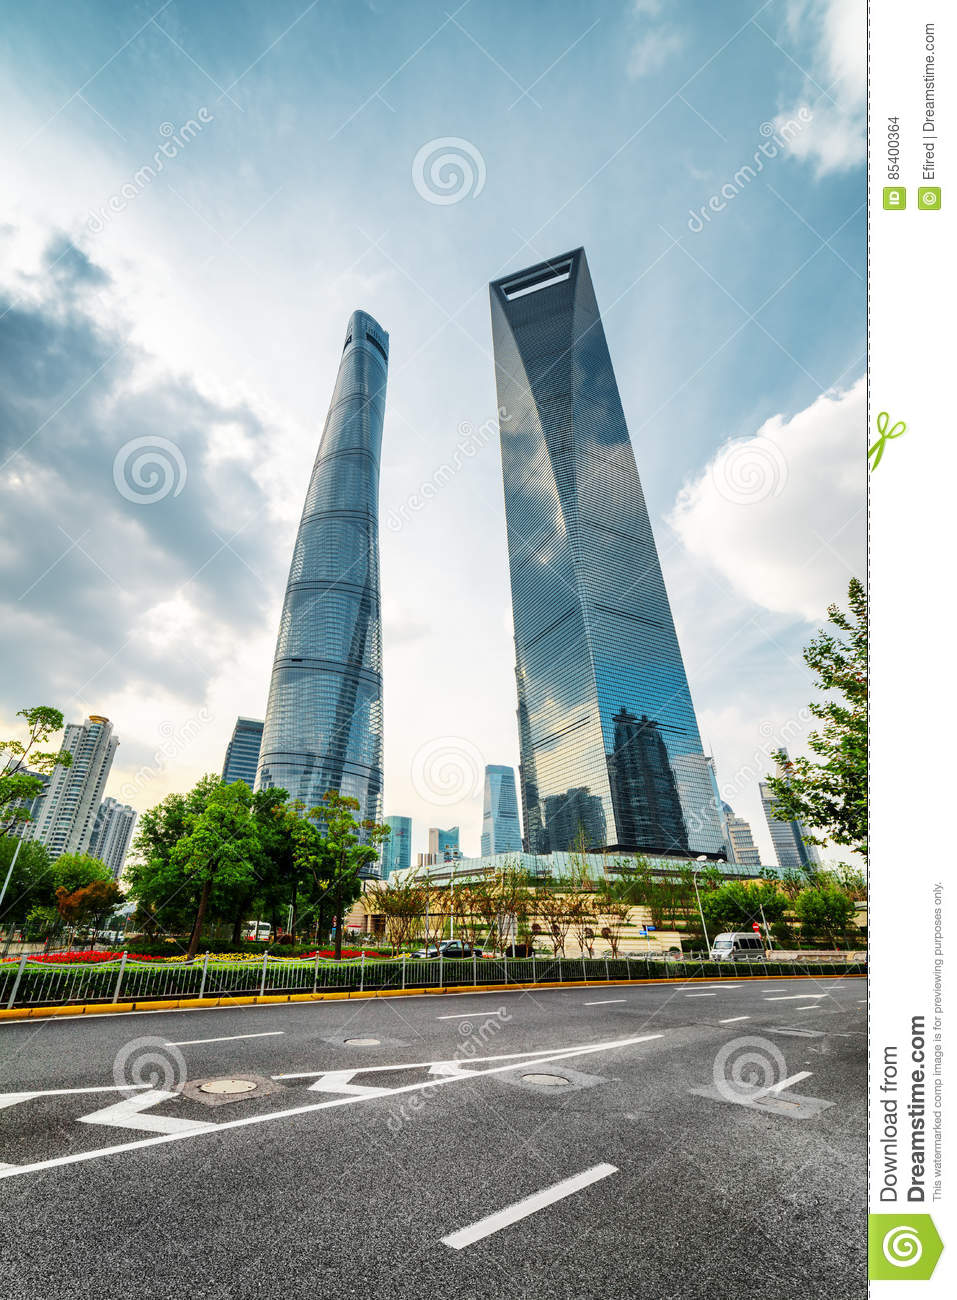 Bottom view of the Shanghai World Financial Center SWFC, China